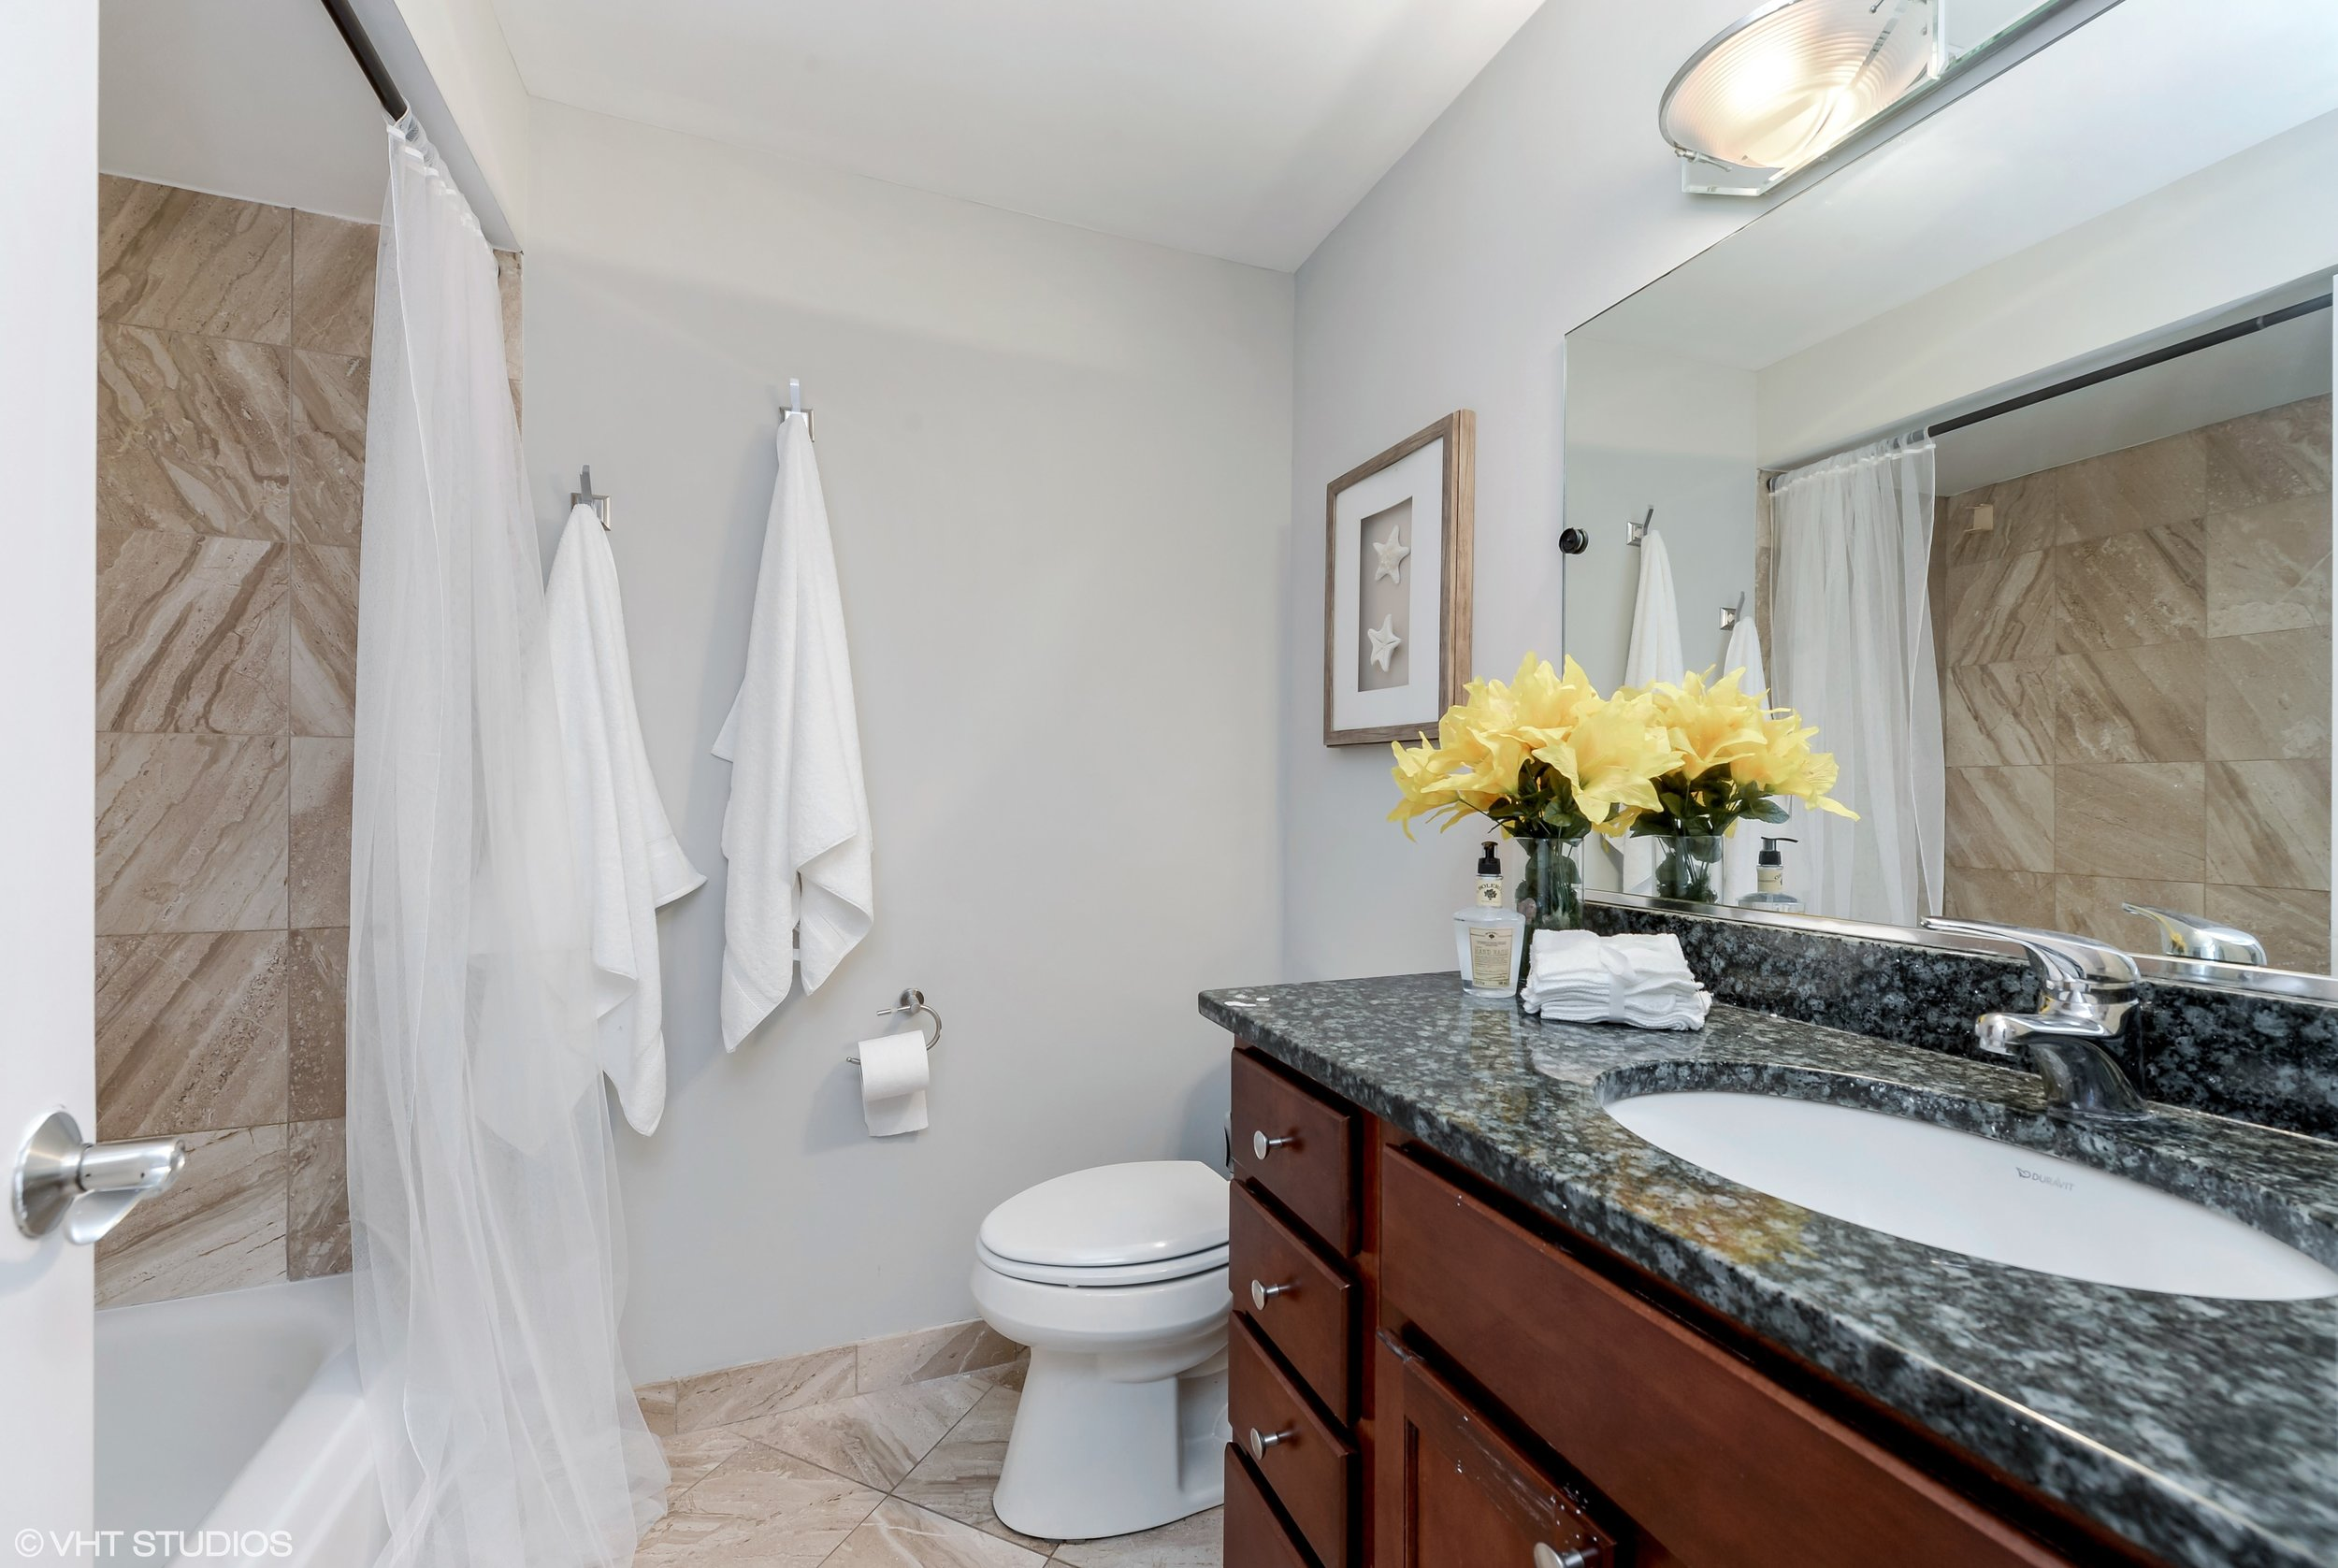 18_942NWoodStreet_Unit1_10_3rdBathroom_HiRes.jpg